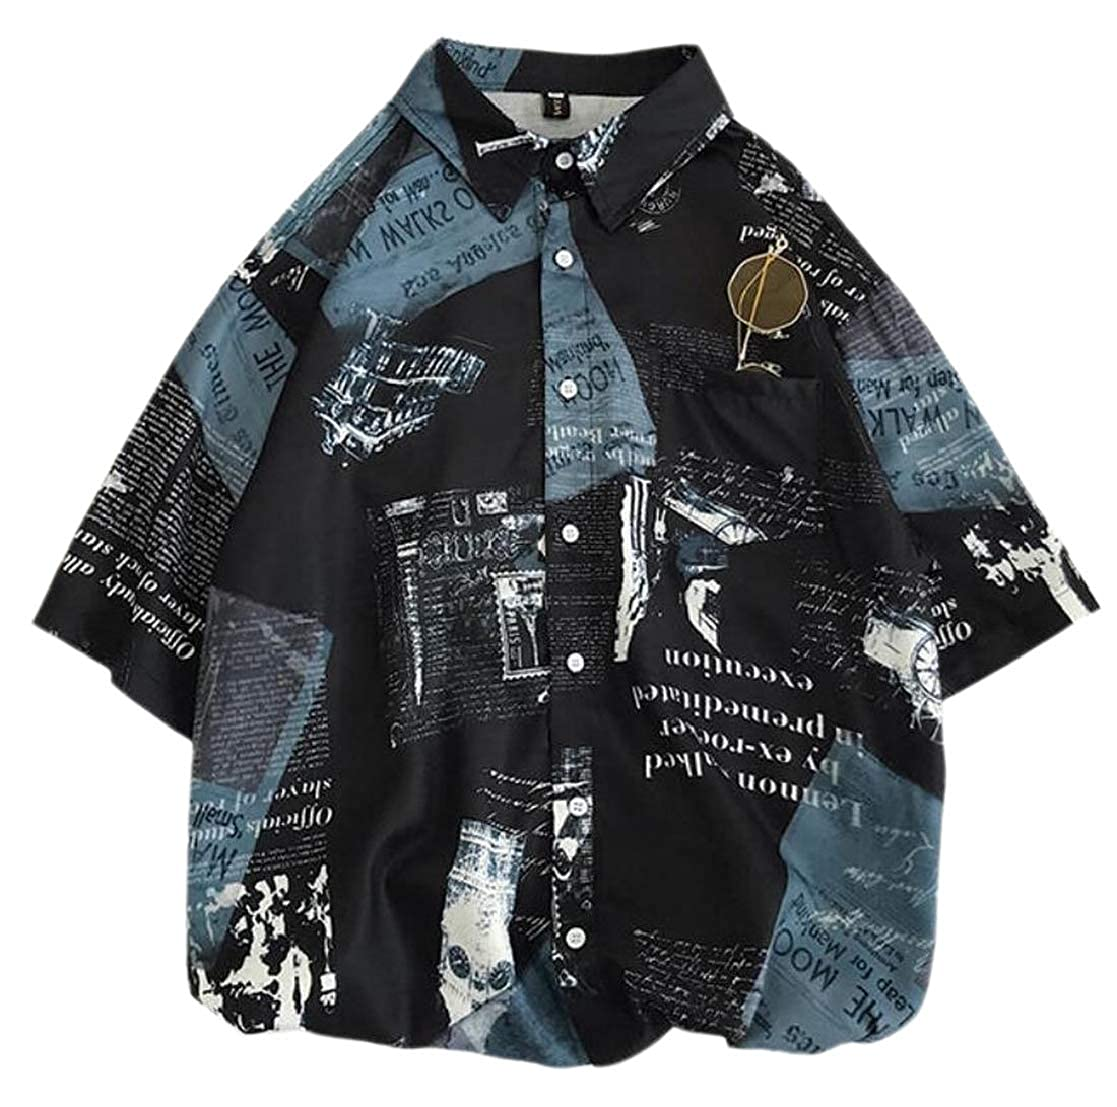 CYJ-shiba Mens Button Summer Vingtage Print Short-Sleeve Shirt Blouse Tops